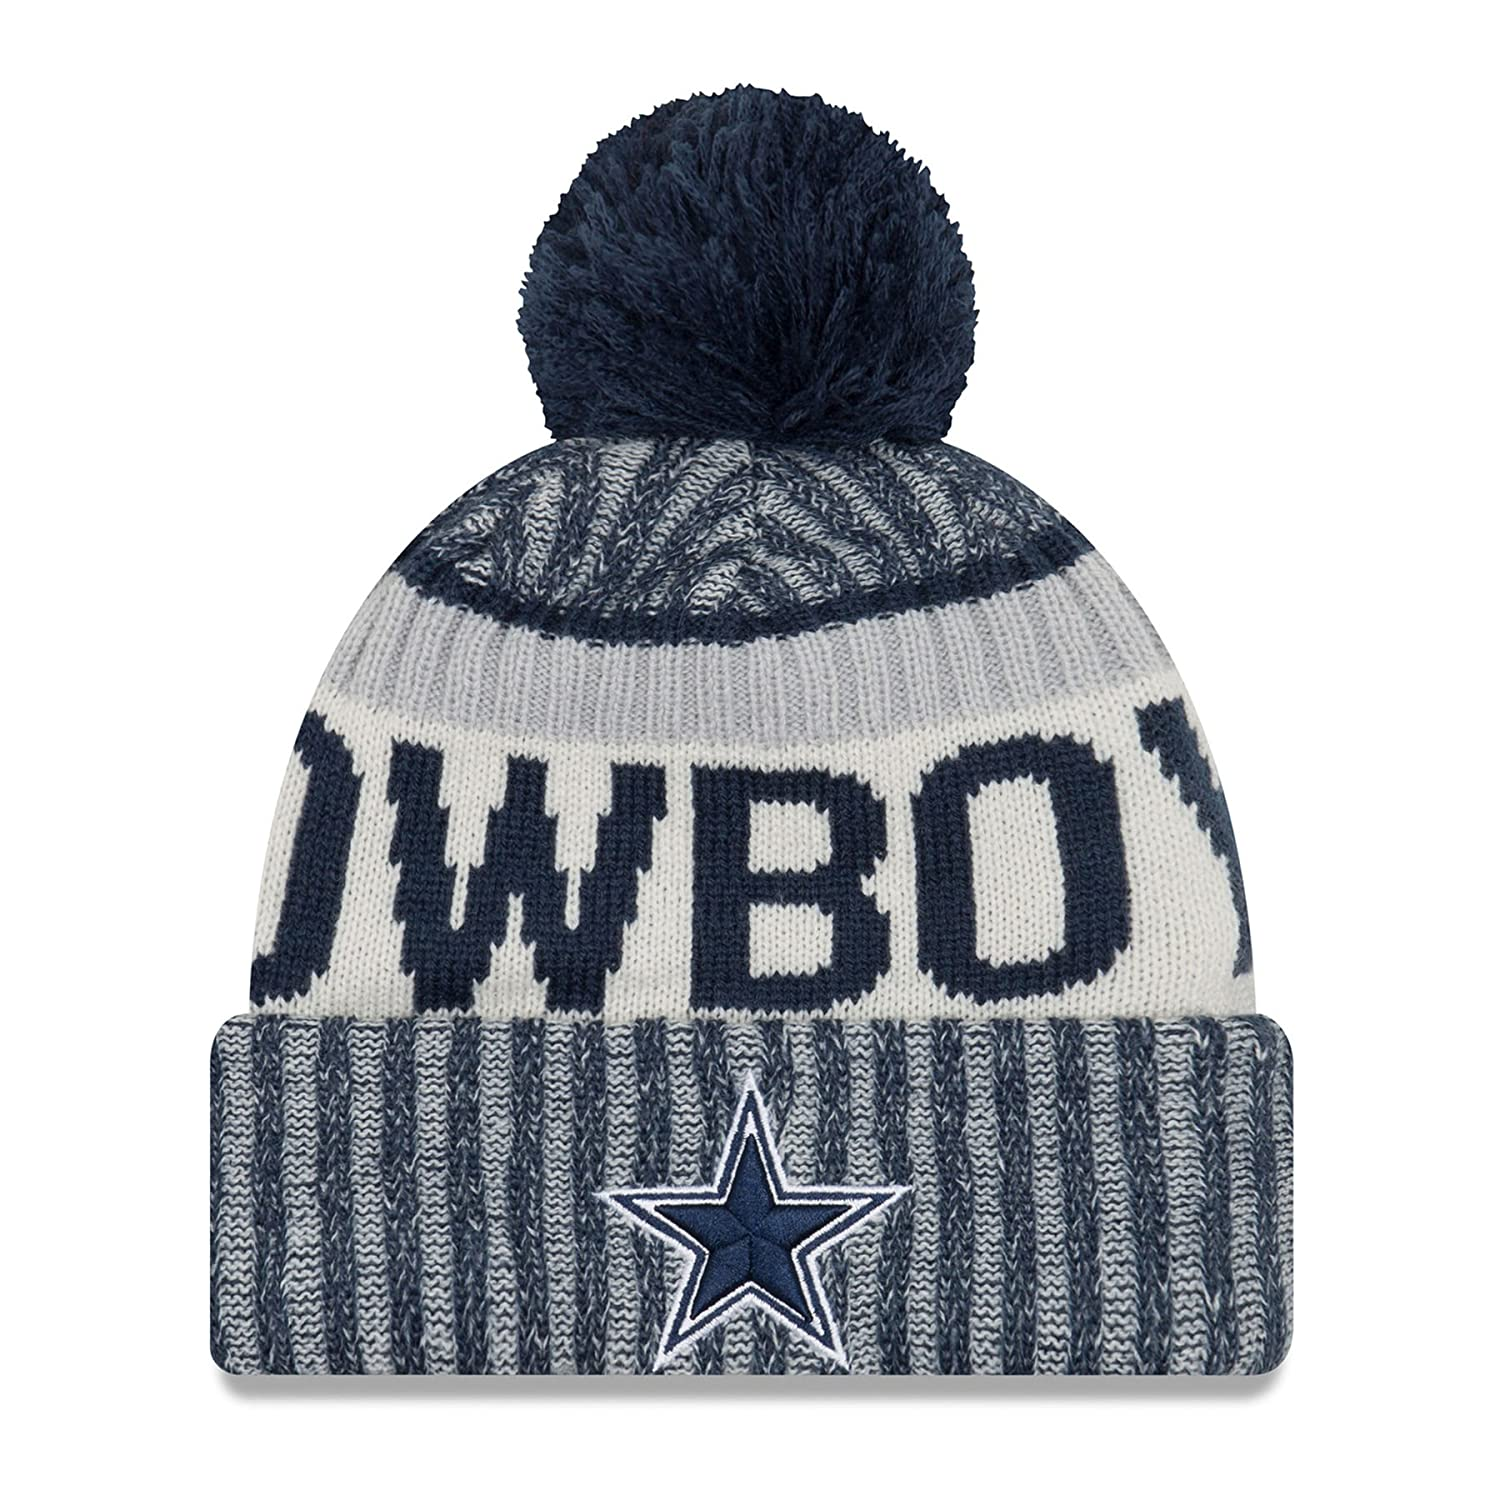 NewEra and NFL Sport Knit Knitted Bobble Cuff Beanie ~ Dallas Cowboys New Era 11460401